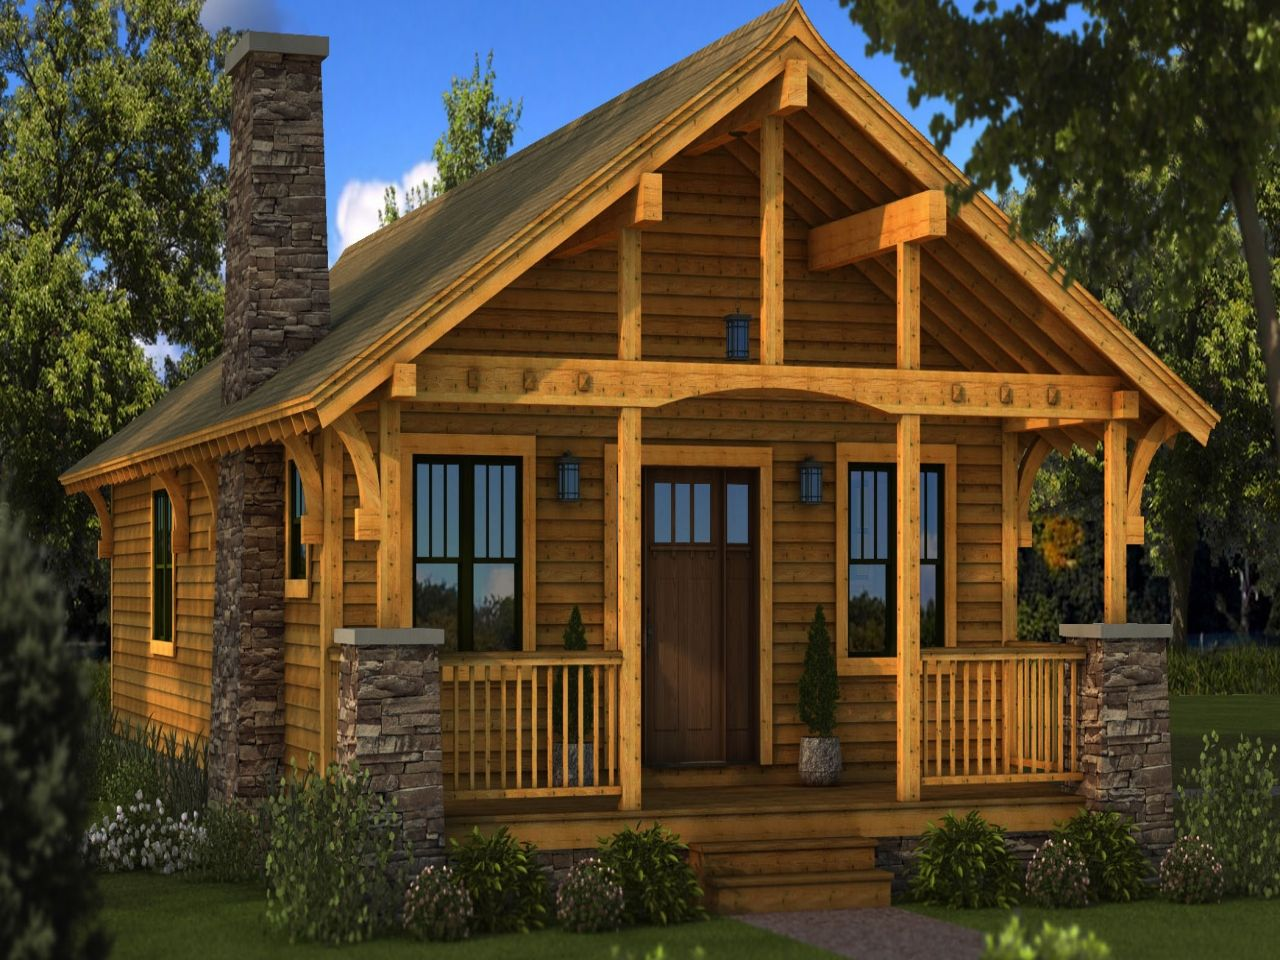 Small log cabin homes plans one story cabin plans for Tiny cabin ideas